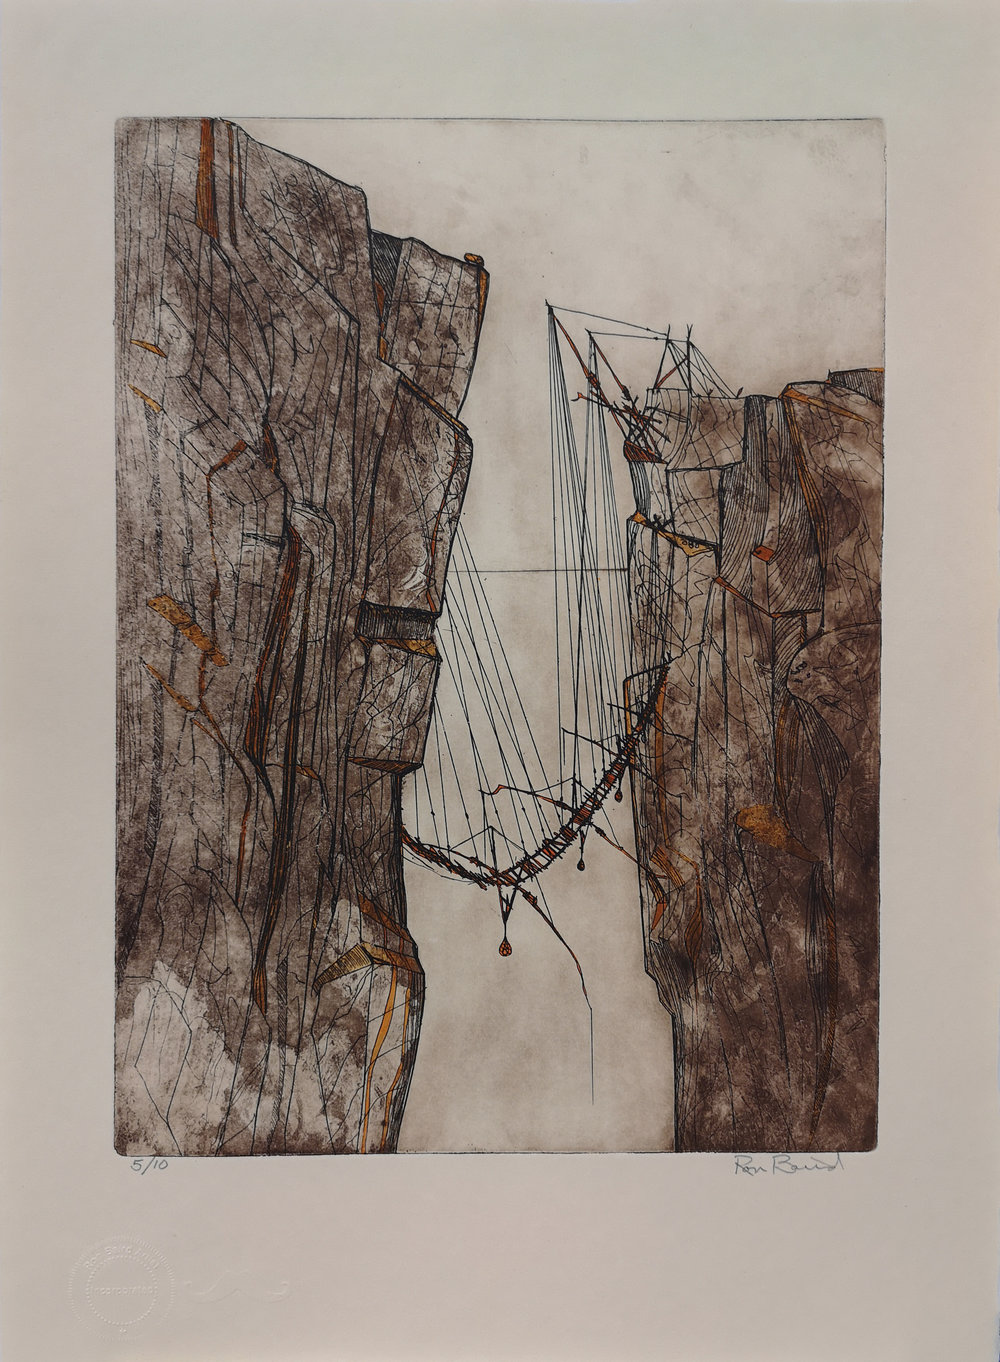 Ron Baird - Cliffhanger Series, zinc plate etching, 2018 1/10Ron Baird's Cliff Hanger series is inspired by ancient Phoenician fishing platforms (some of which are still seasonally used), discovered on the Adriatic coast of Puglia in southern Italy. The series is made from material left over from a mural the artist made for the legislature of the NWT in Yellowknife. The paper is archival, made by hand in a British mill in 1979. The ink is French, (Charbonelle) which has long been the world standard for fine etching ink. This series was executed in the spring of 2018.